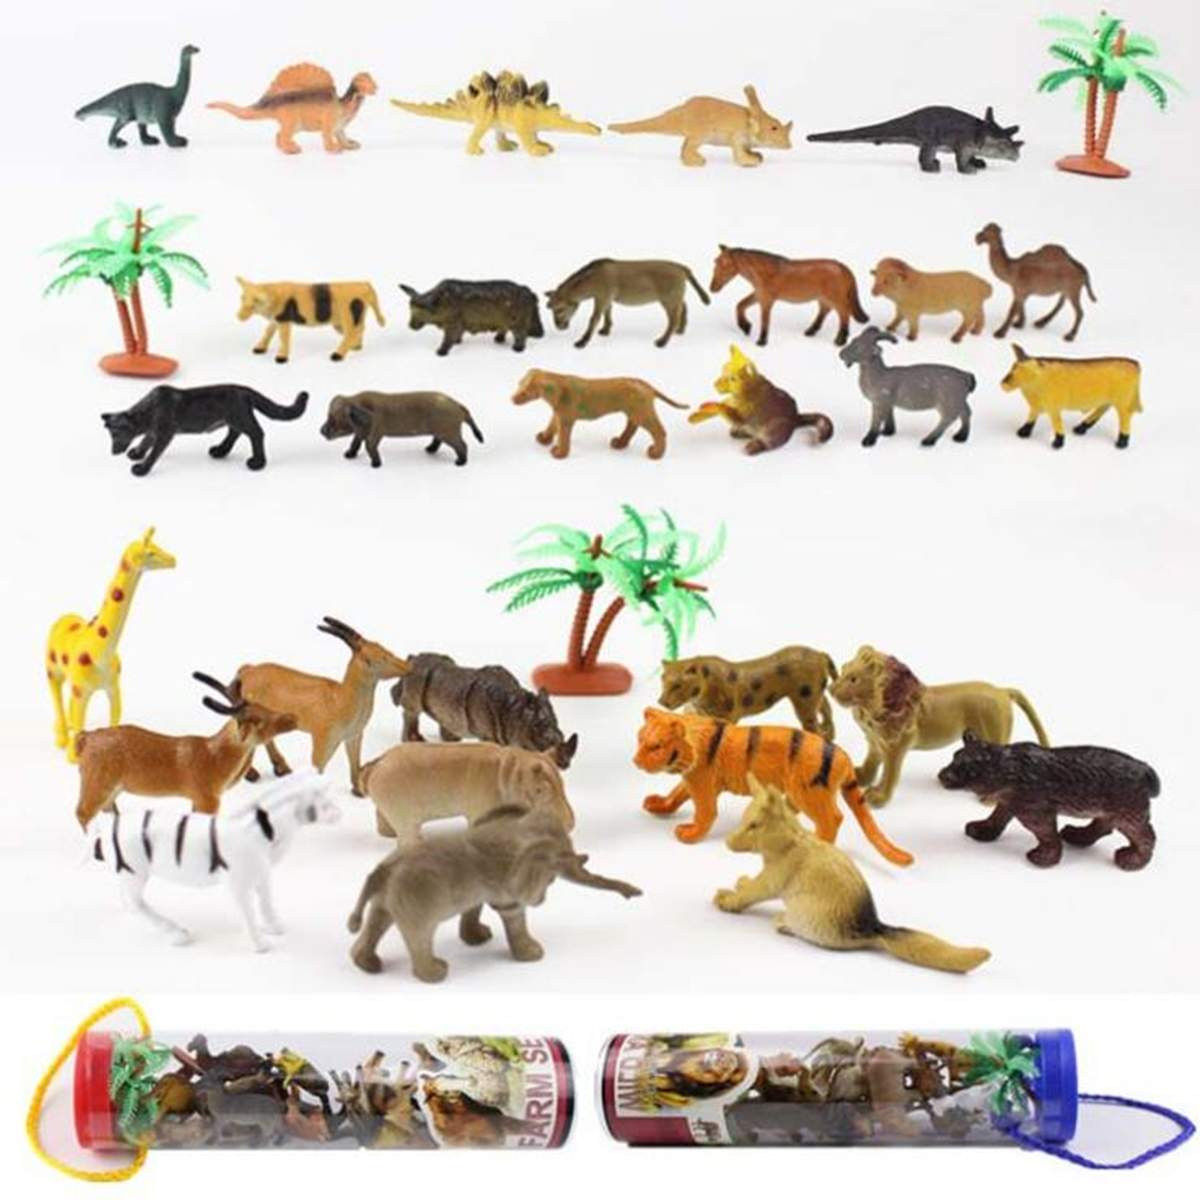 12pcs Dinosaur Toy Plastic Simulation Animal Model Sand Play Kits Ocean Life Model Action & Figures Best Gift for Boys image